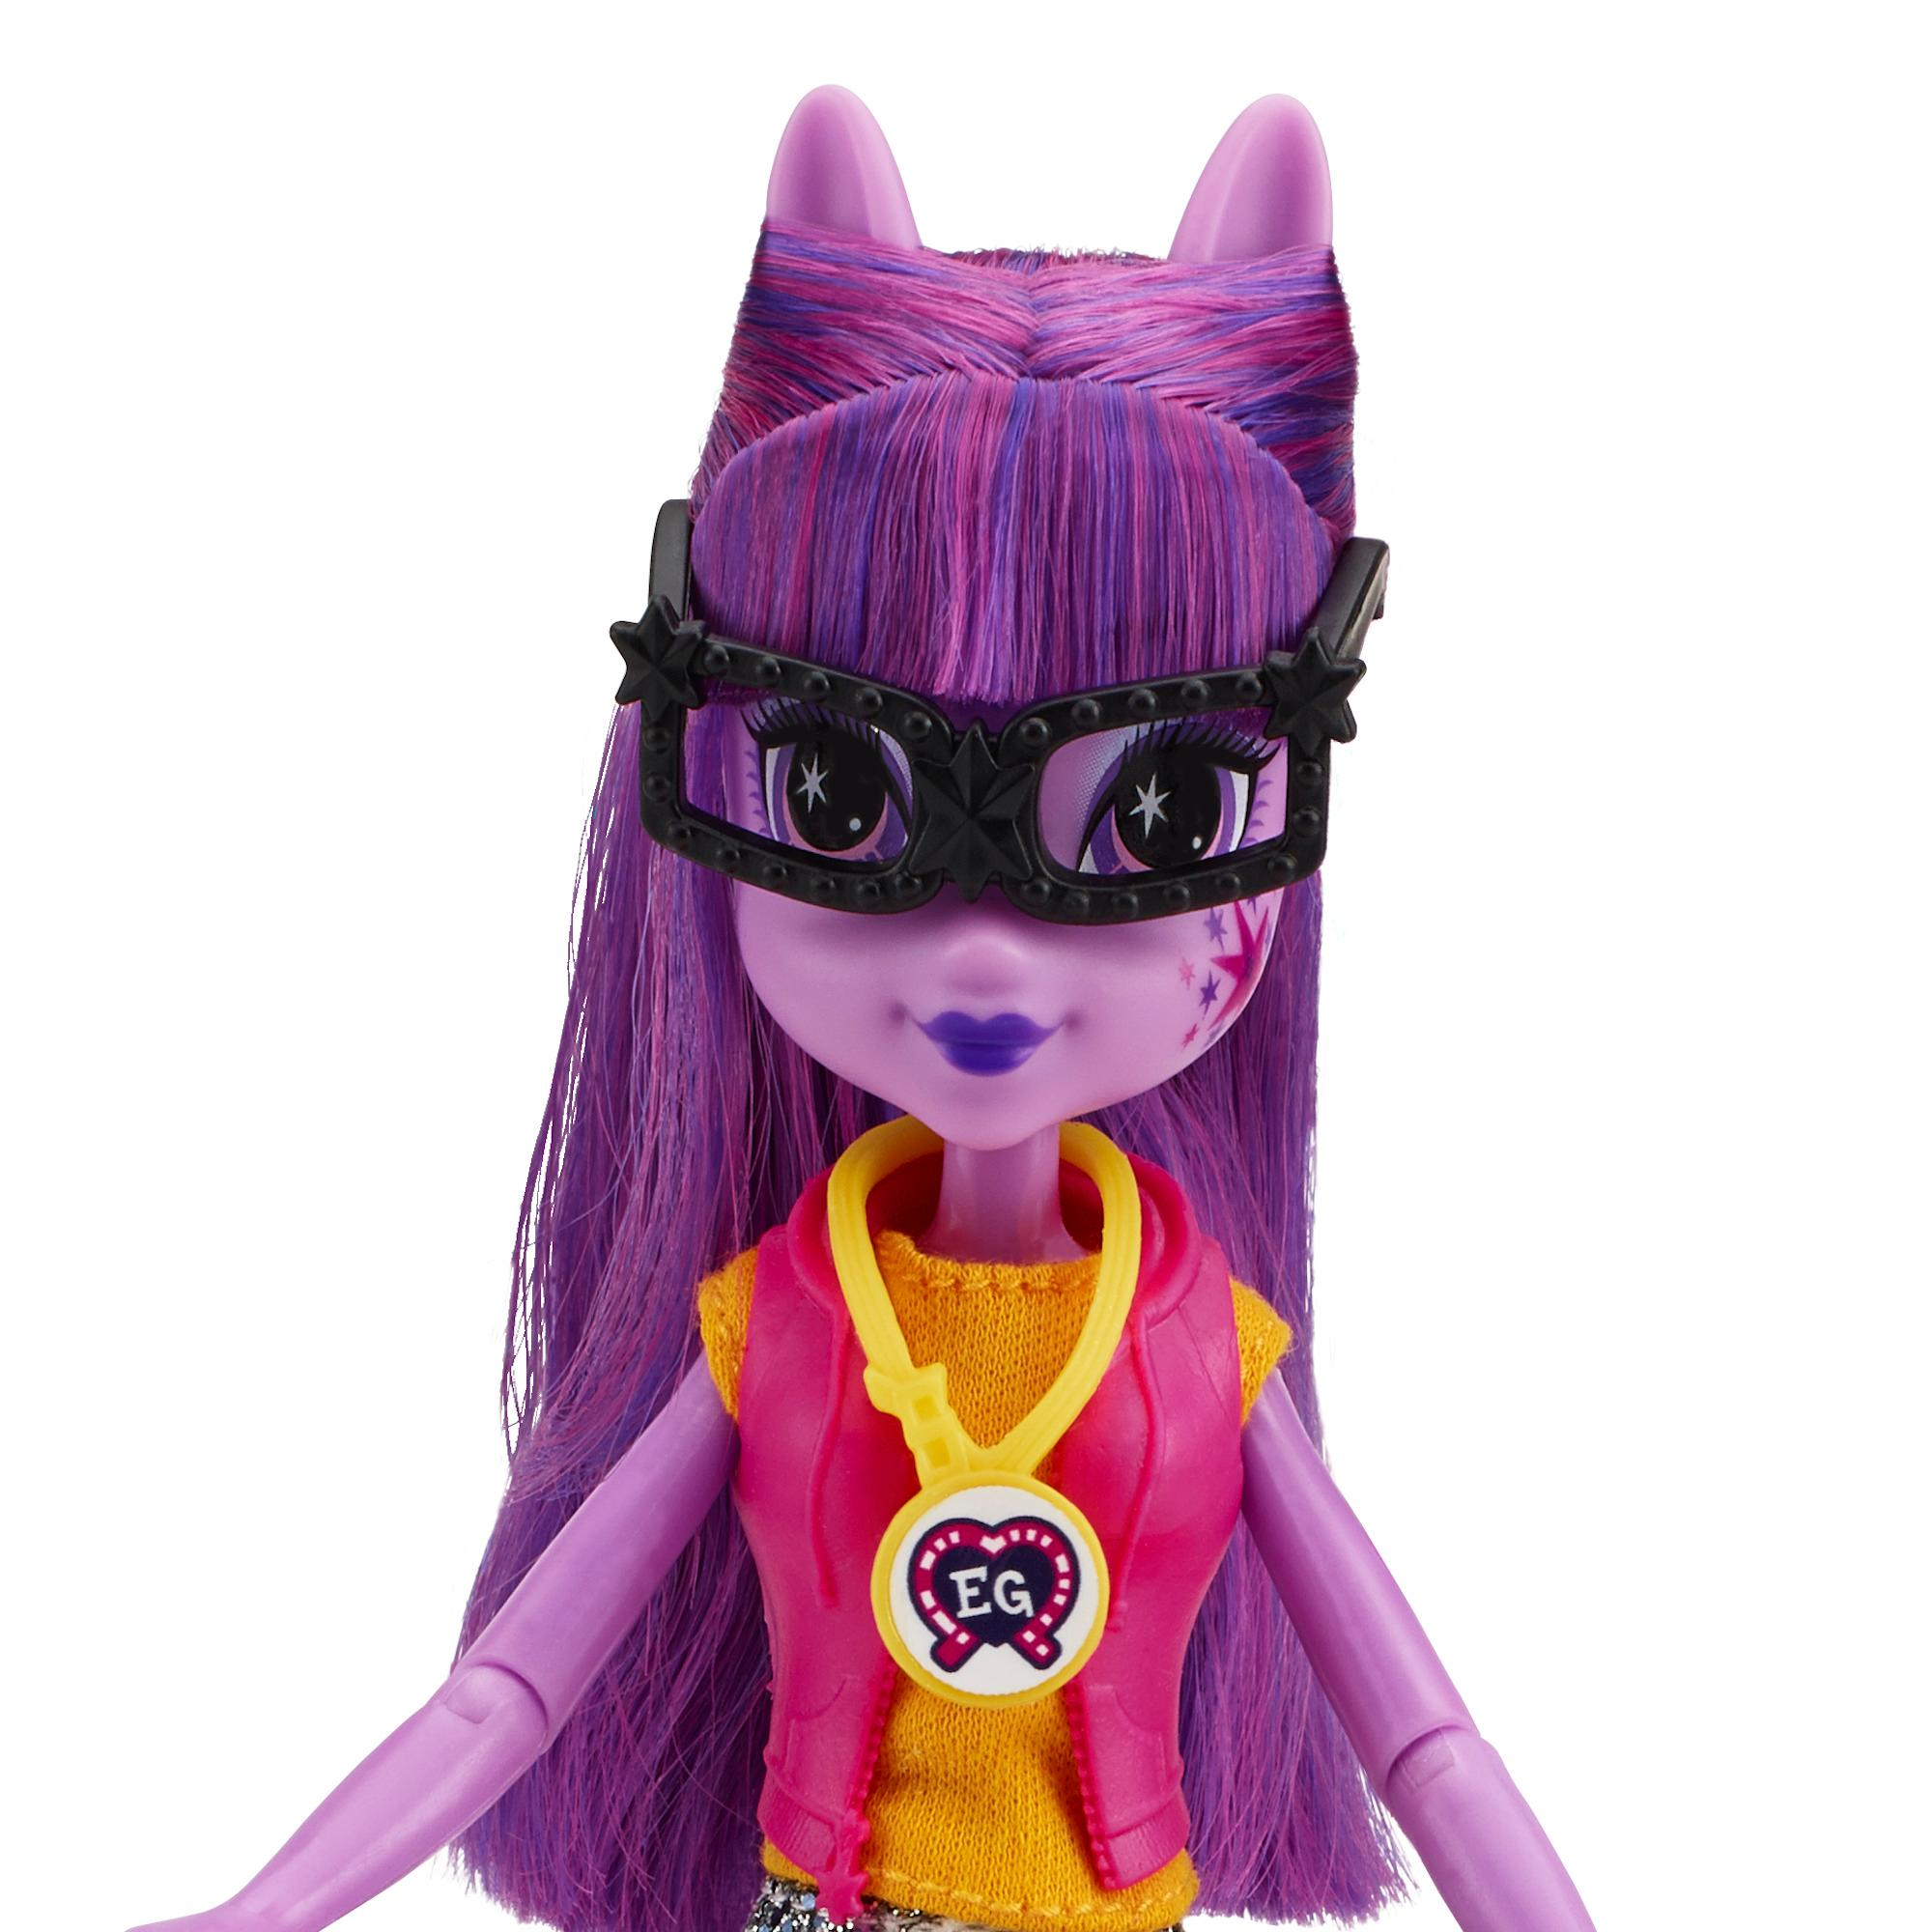 Amazon.com: My Little Pony Equestria Girls Flash Sentry and Twilight